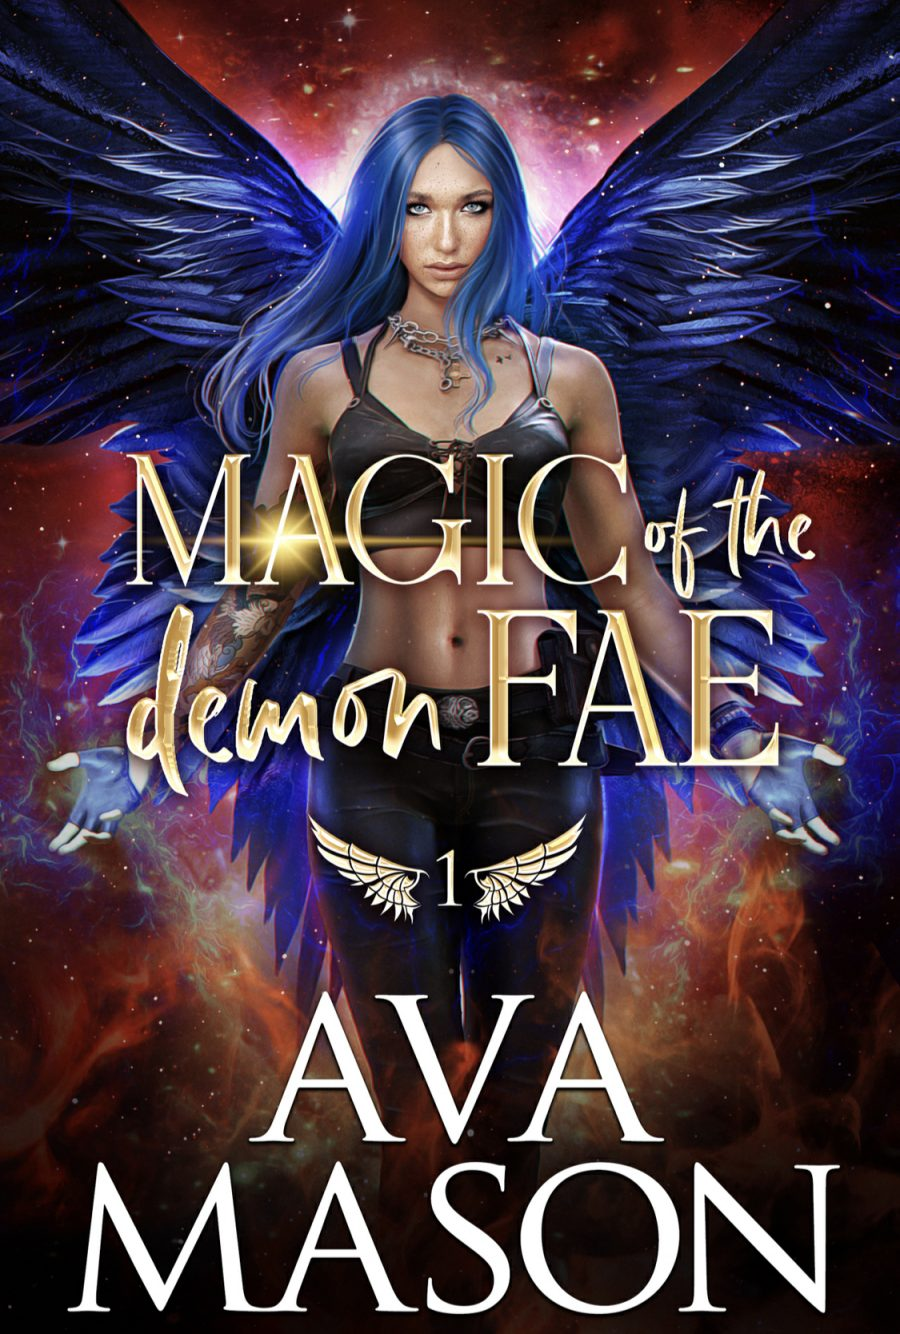 Magic of the Demon Fae by Ava Mason - A Book Review #BookReview #MediumBurn #RH #Fantasy #4Stars #KindleUnlimited #KU